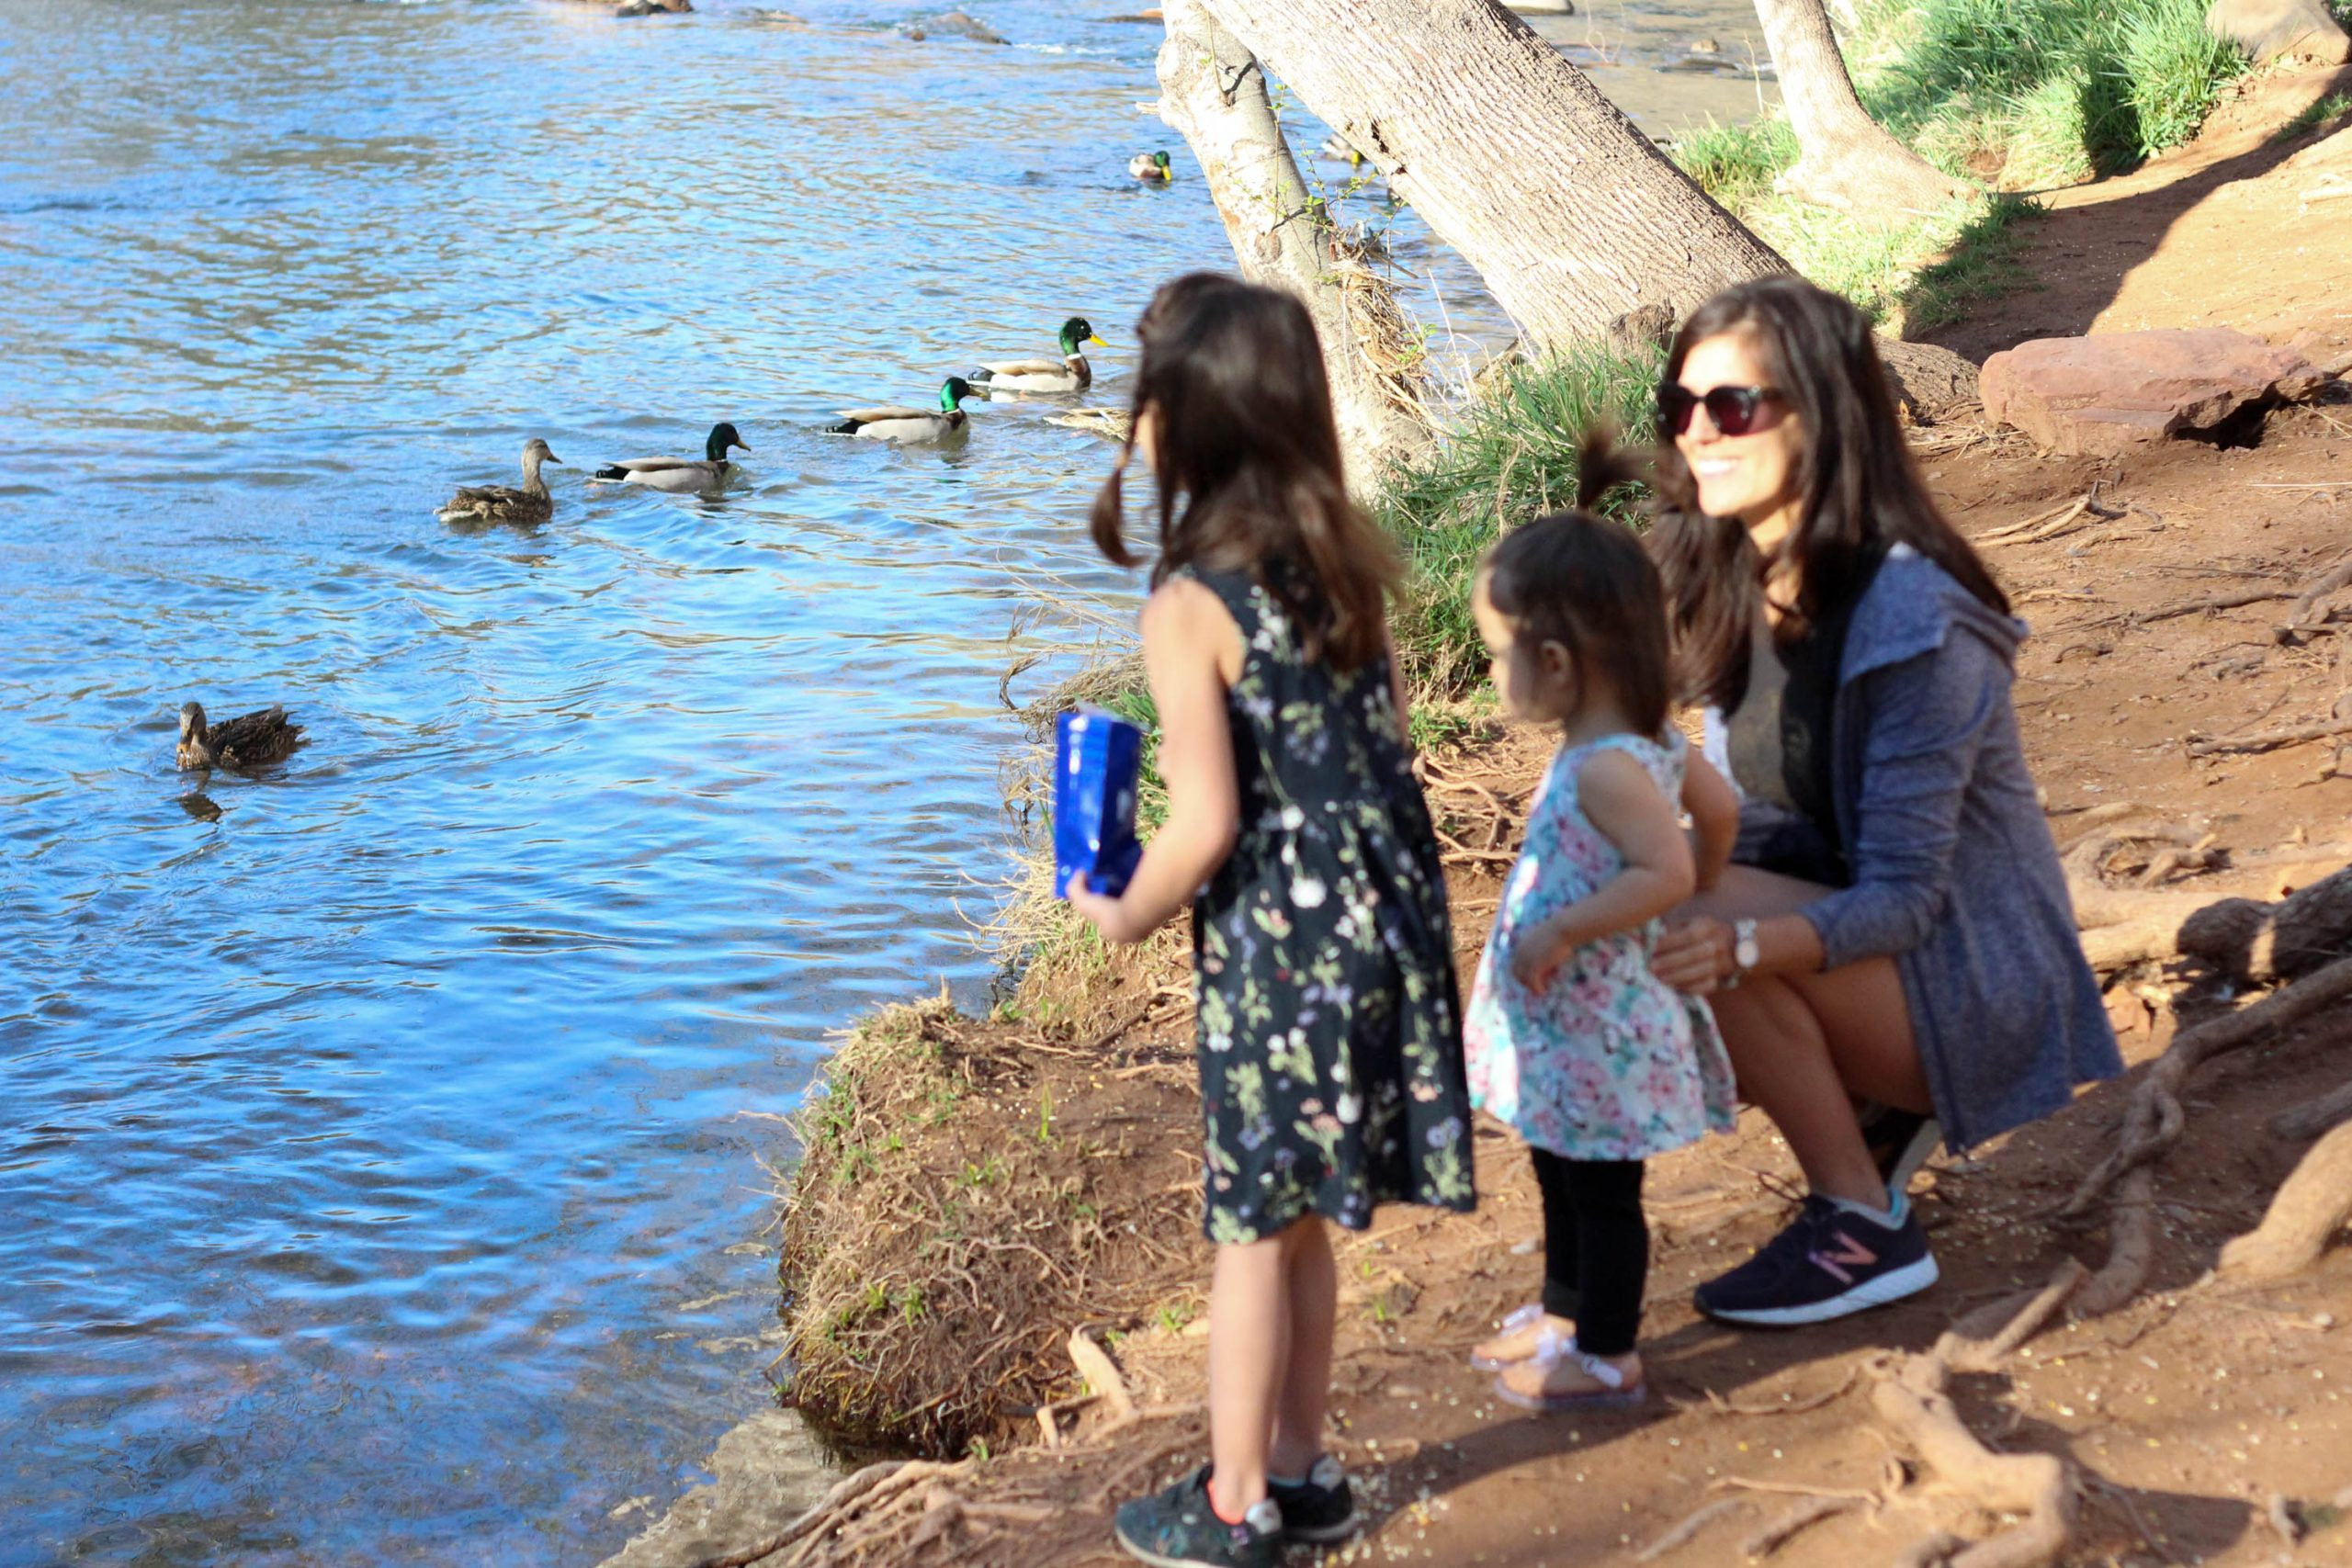 Feeding ducks with the girls at L'Auberge de Sedona